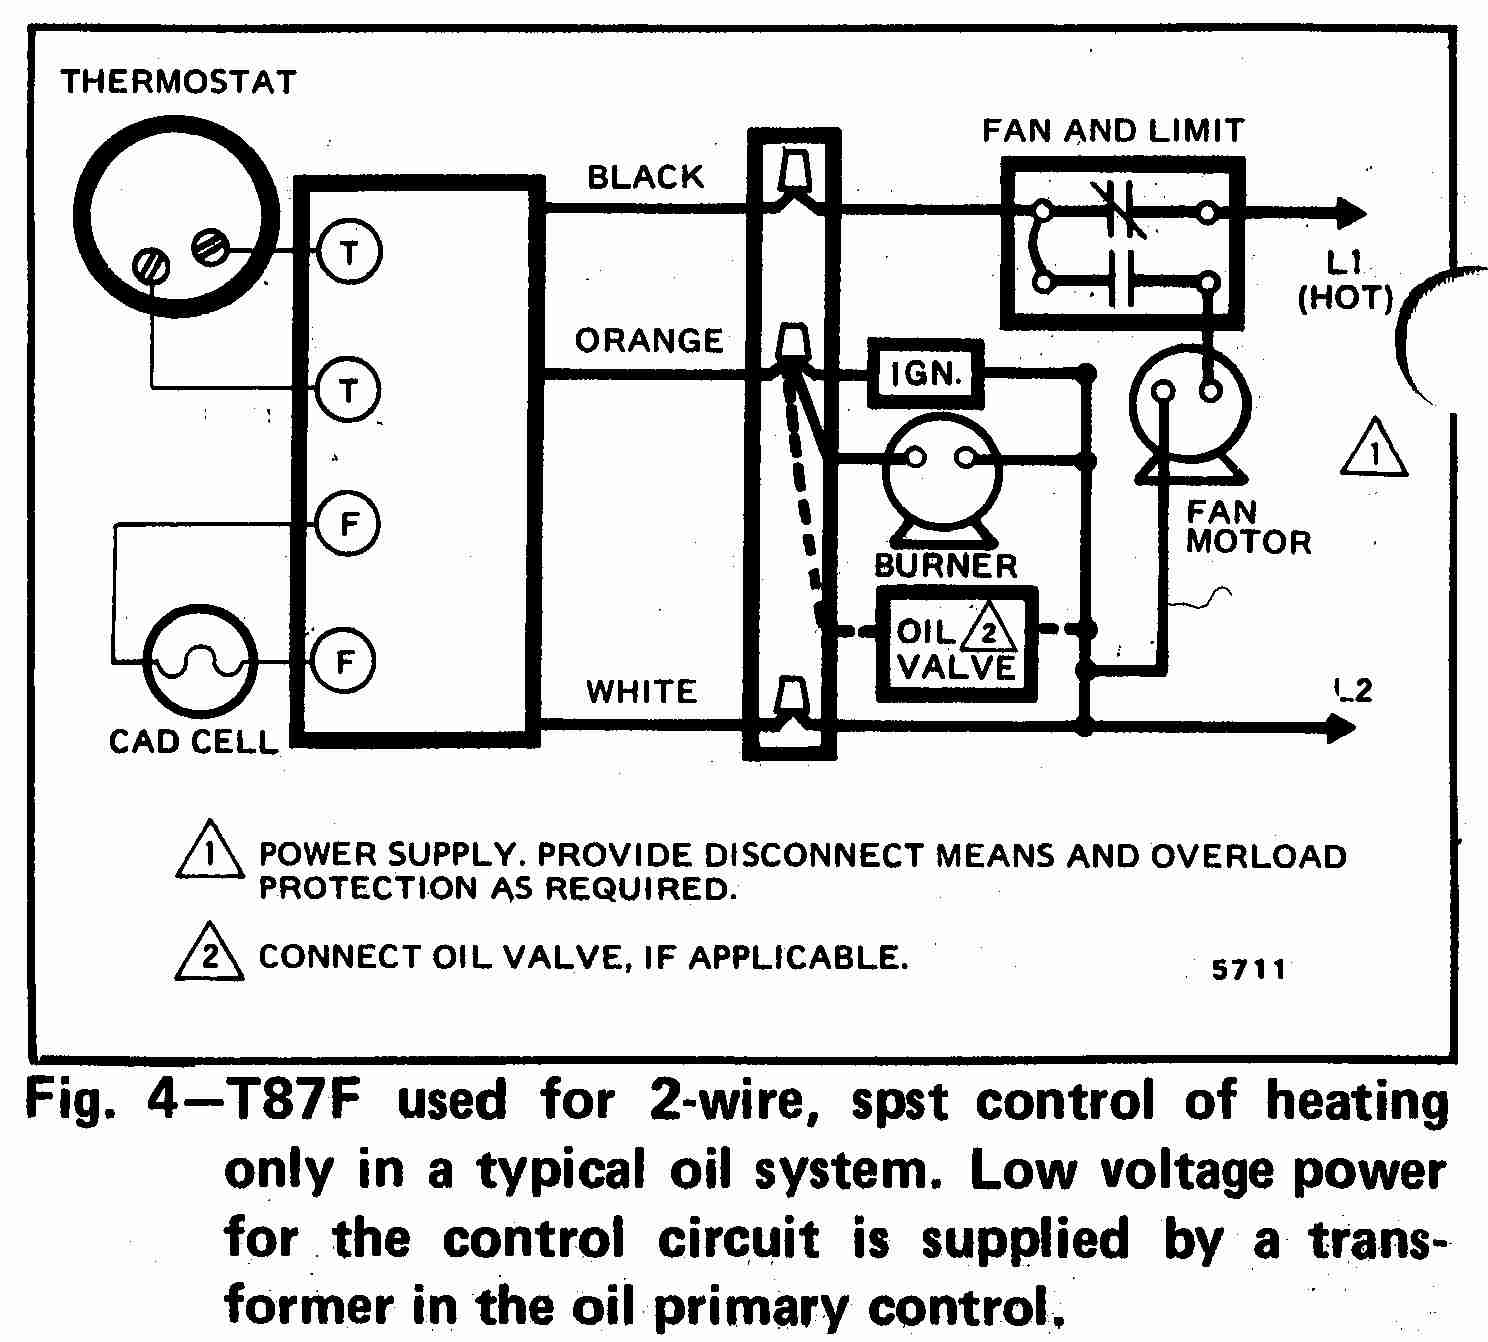 Wiring diagrams hvac systems wiring diagrams schematics room thermostat wiring diagrams for hvac systems honeywell t87f thermostat wiring diagram for 2 wire spst control of heating only in room thermostat wiring swarovskicordoba